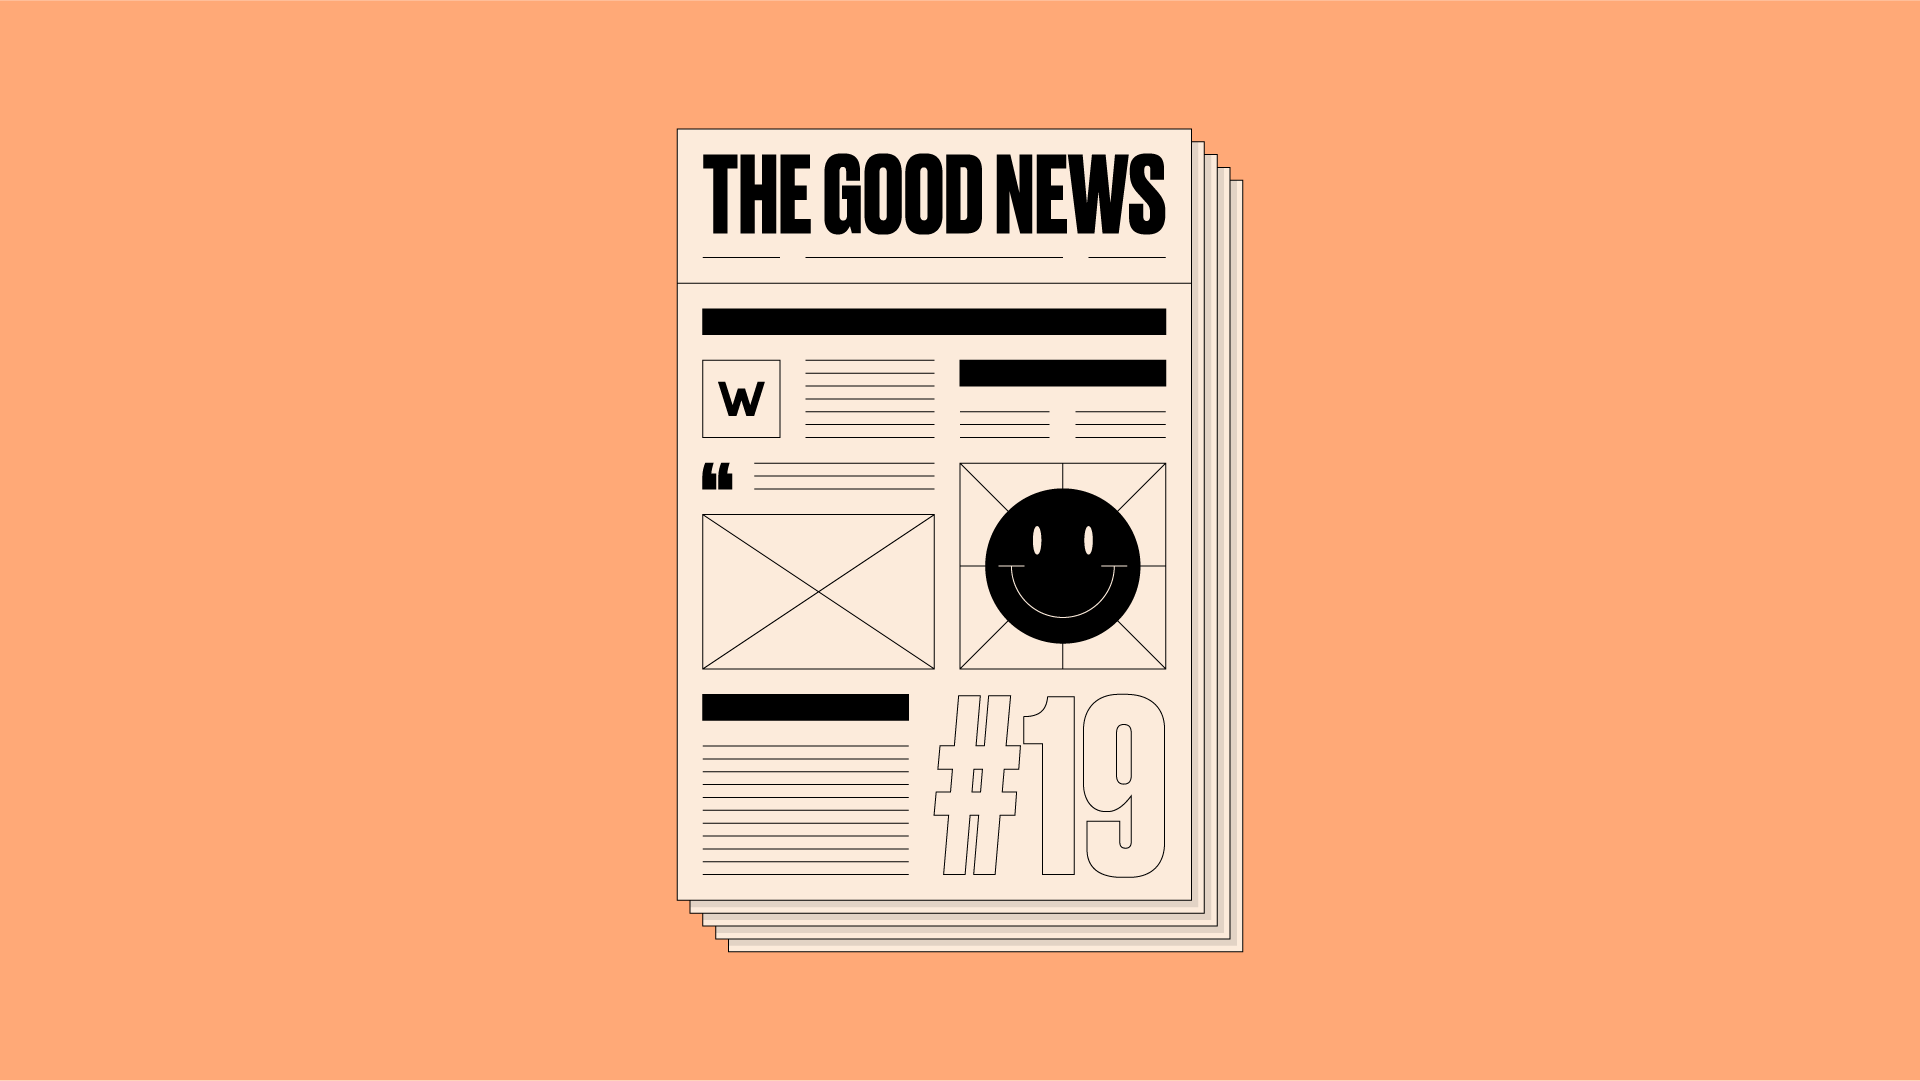 Illustration of a newspaper front page with 'The Good News #19' written on it, on an orange background